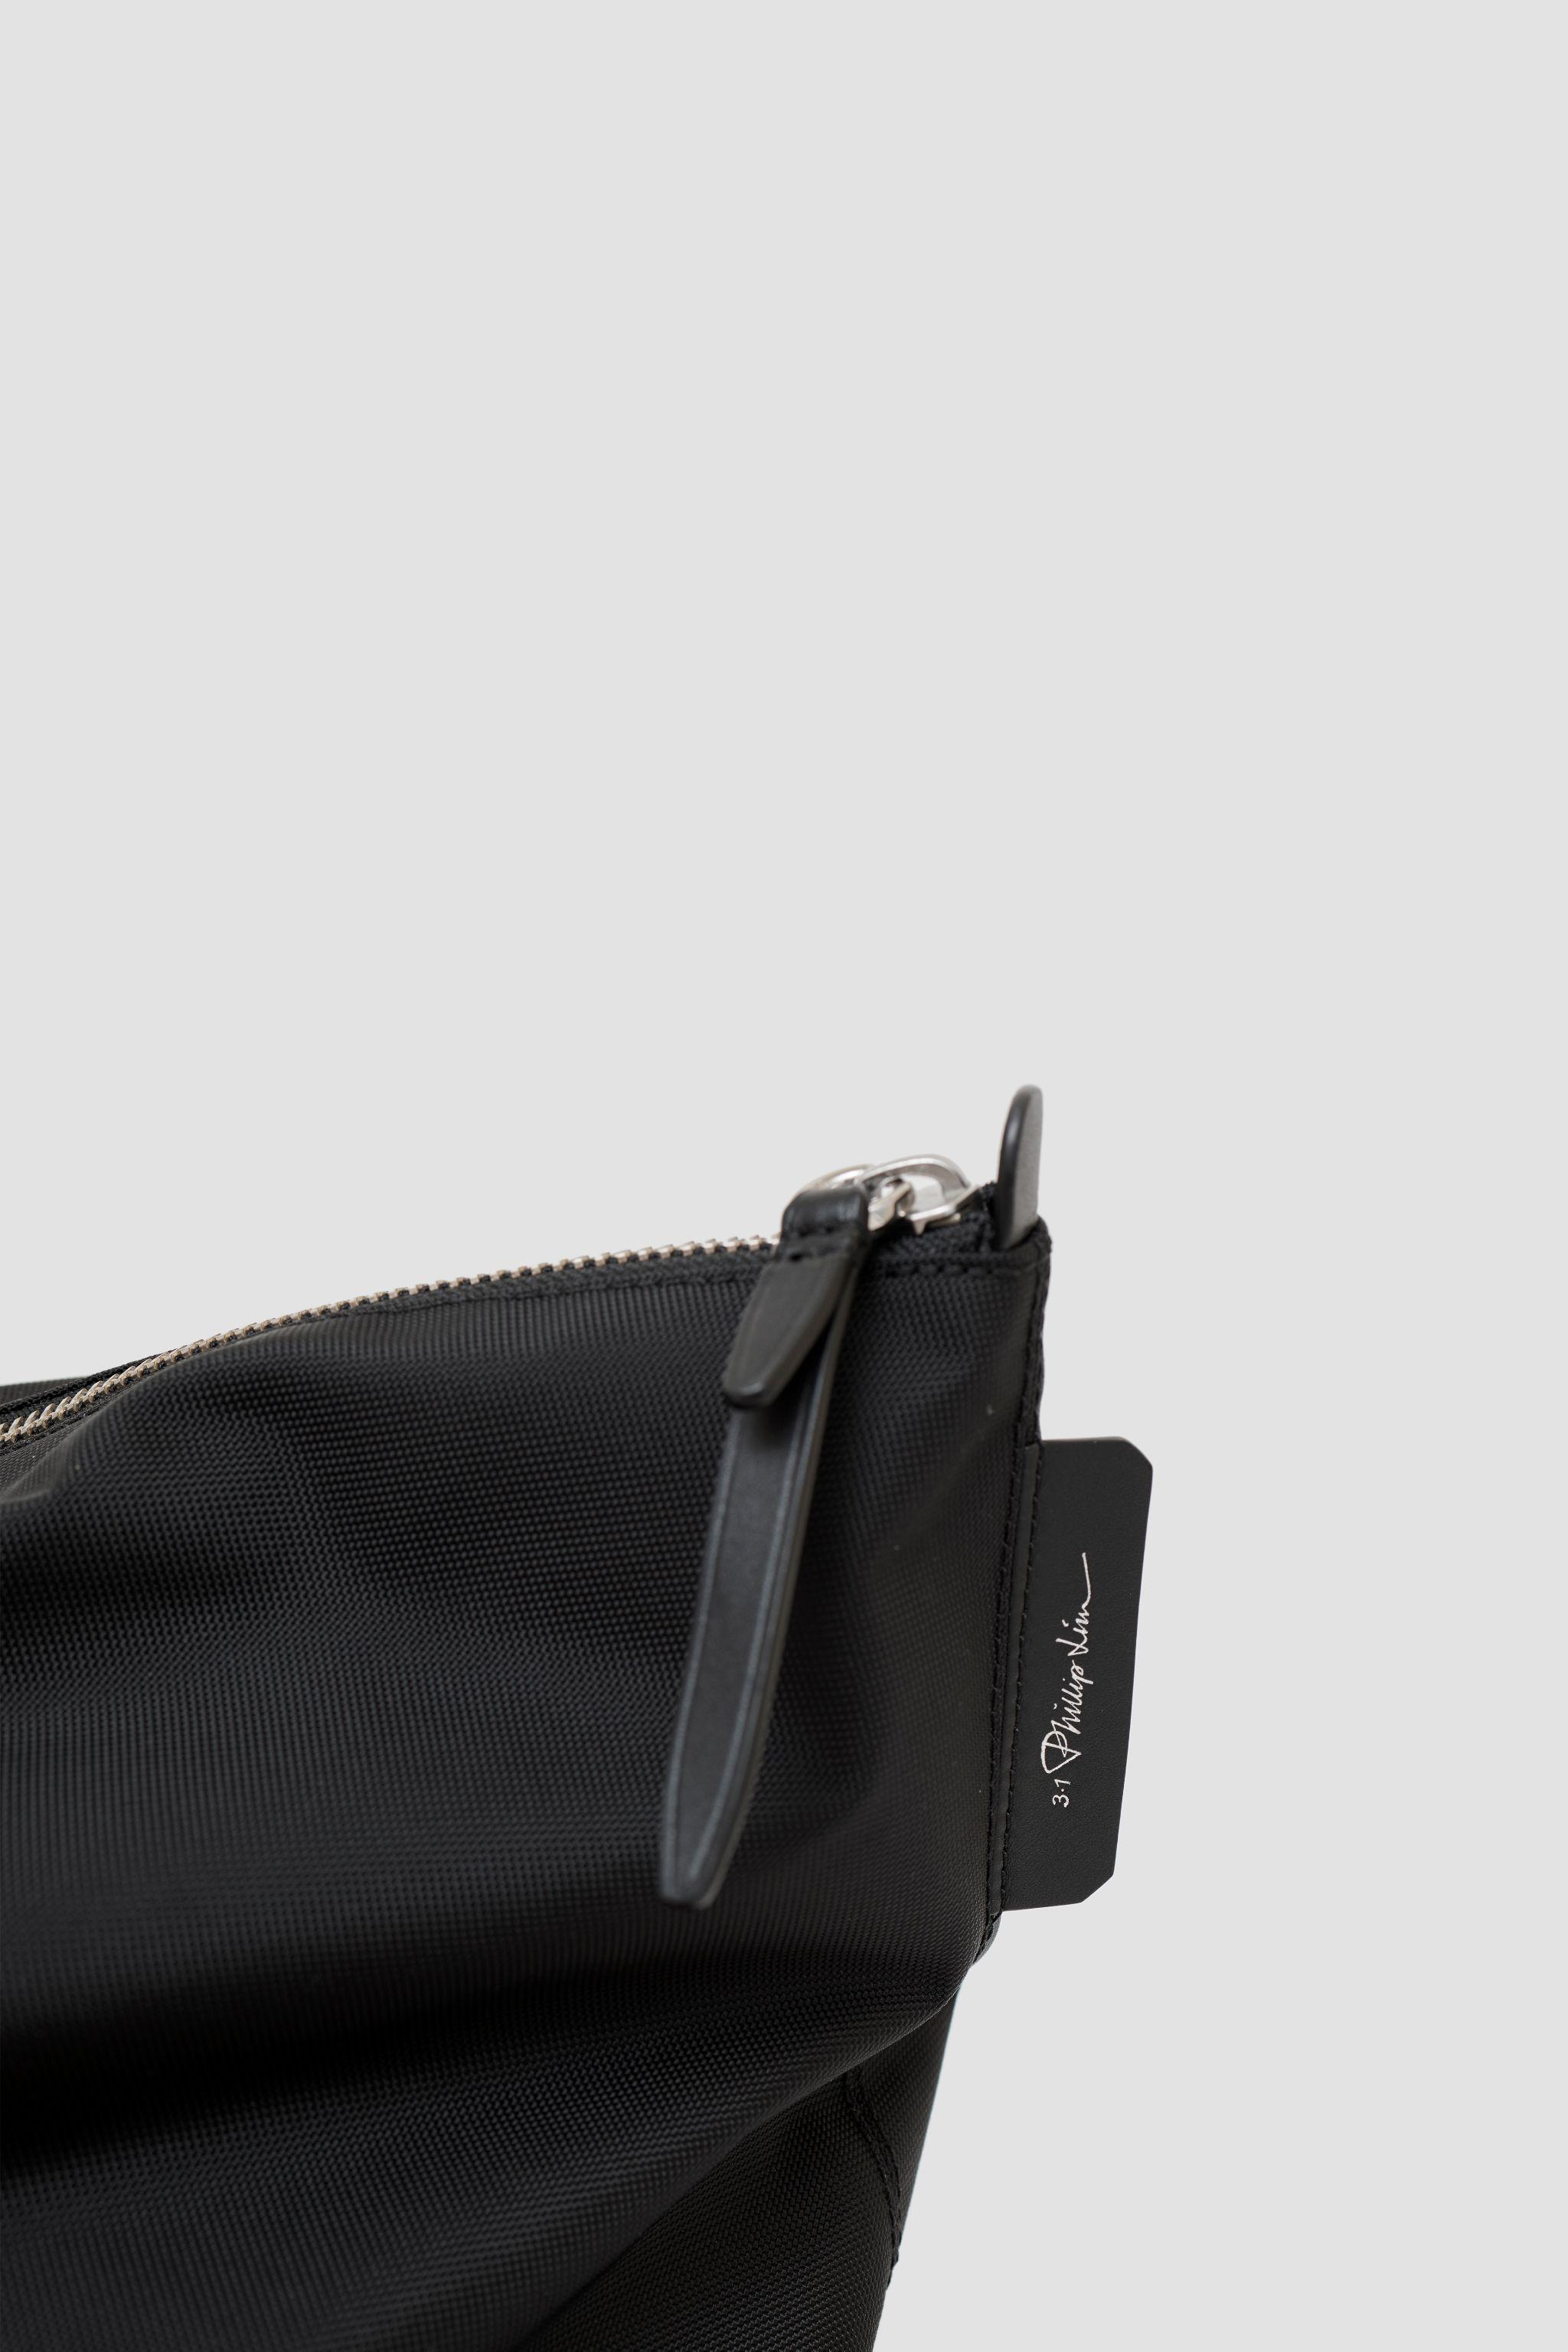 The Deconstructed Duffle Bag 3